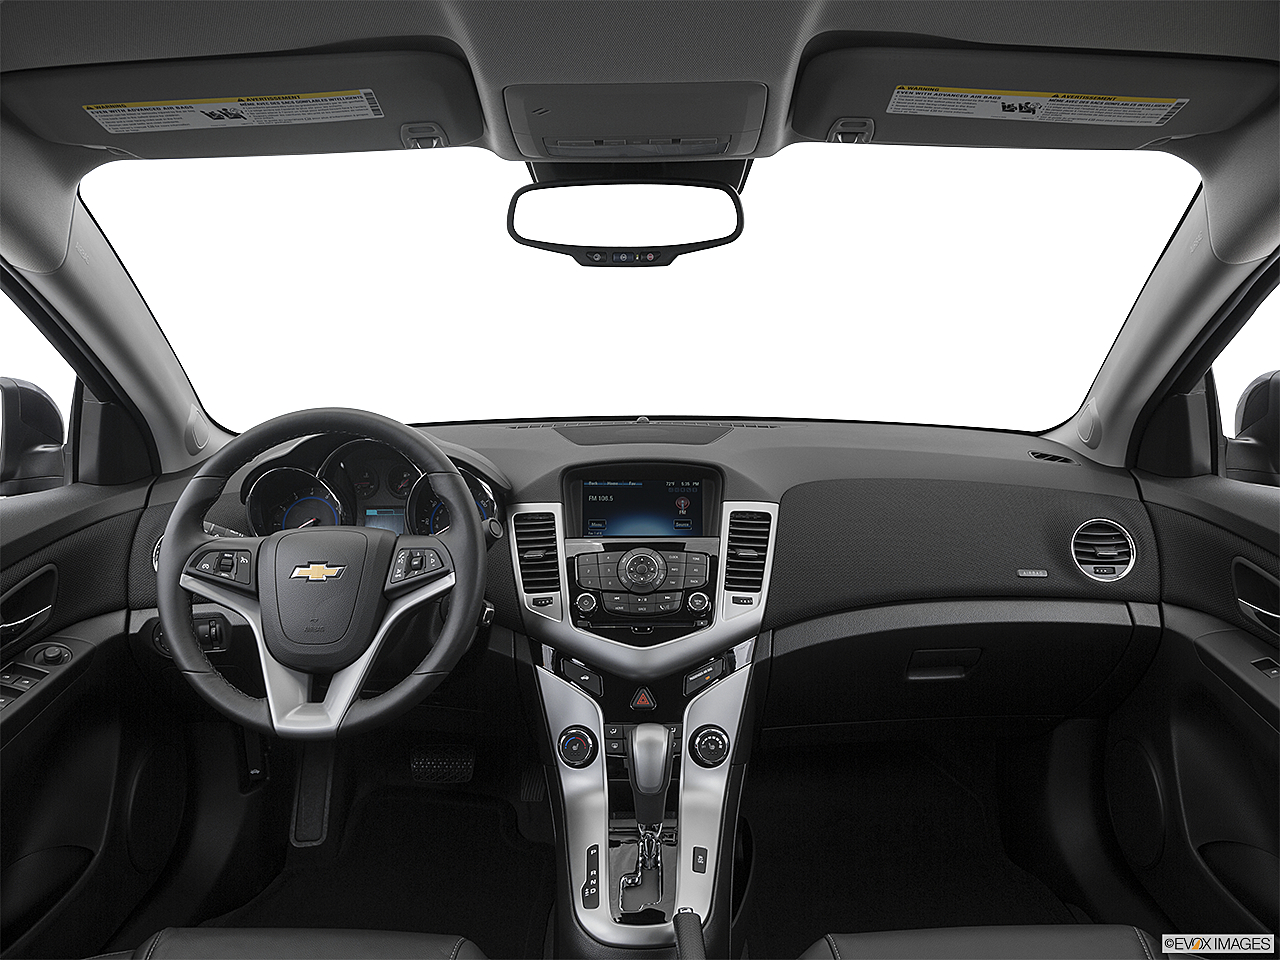 2016 Chevrolet Cruze Limited 2lt Automatic Centered Wide Dash Shot